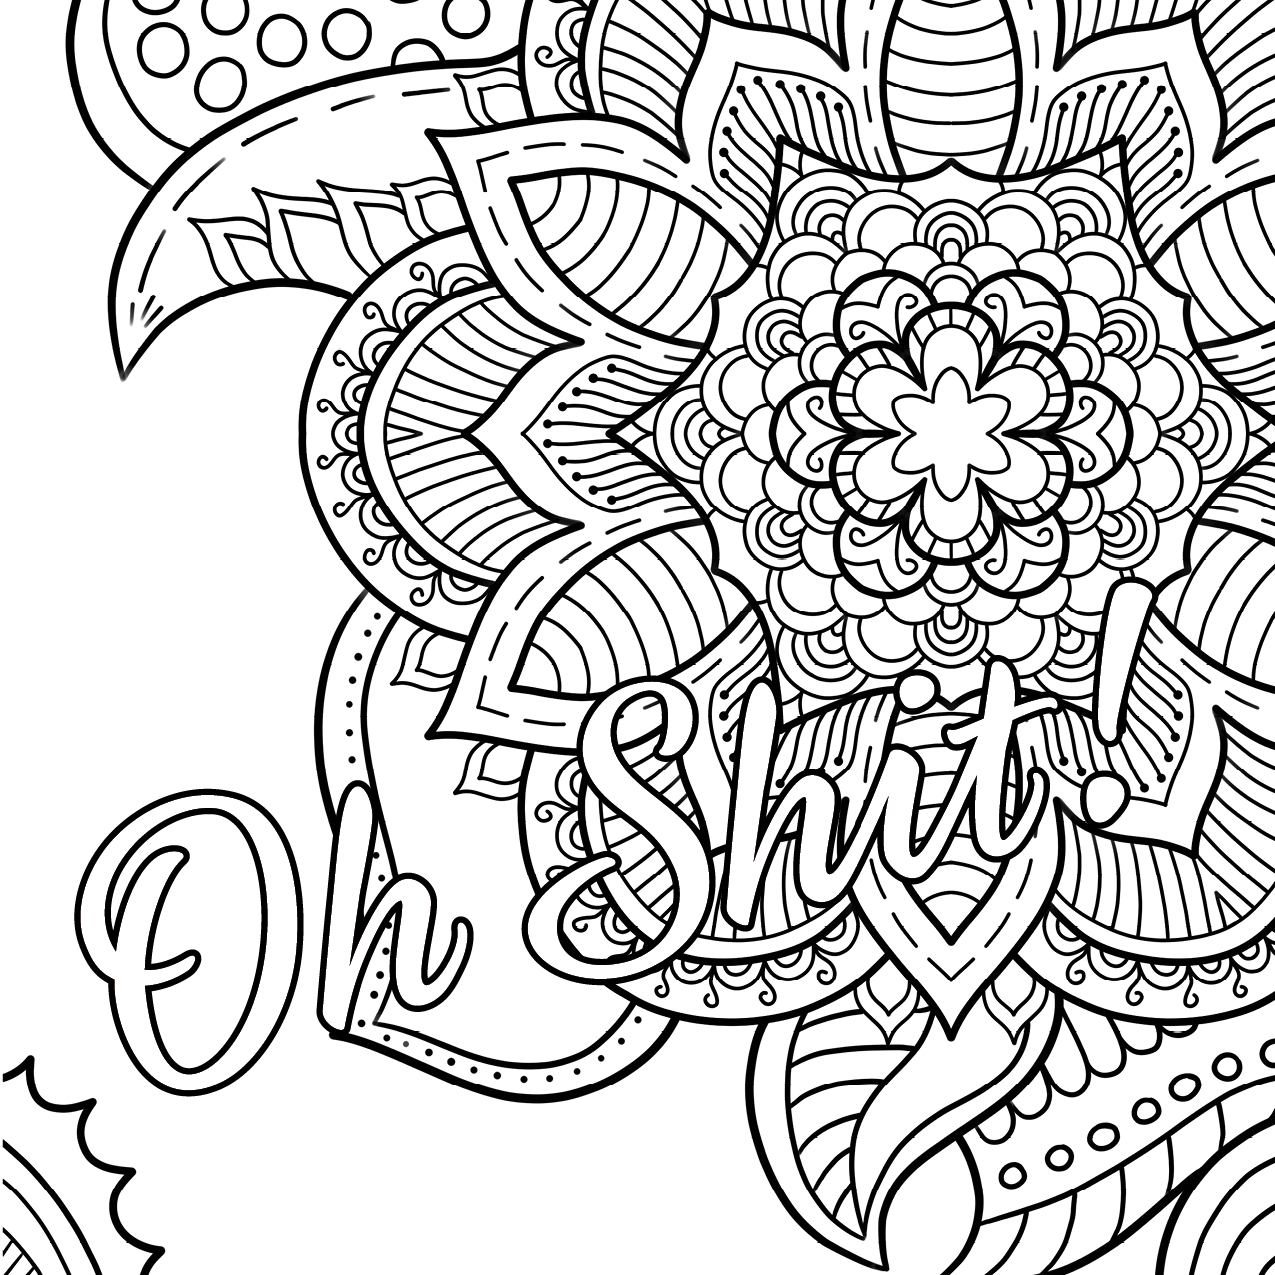 I Have Just Released A New Swear Word Coloring Book Im Giving Away Free Page Sample From It For You All To Color In